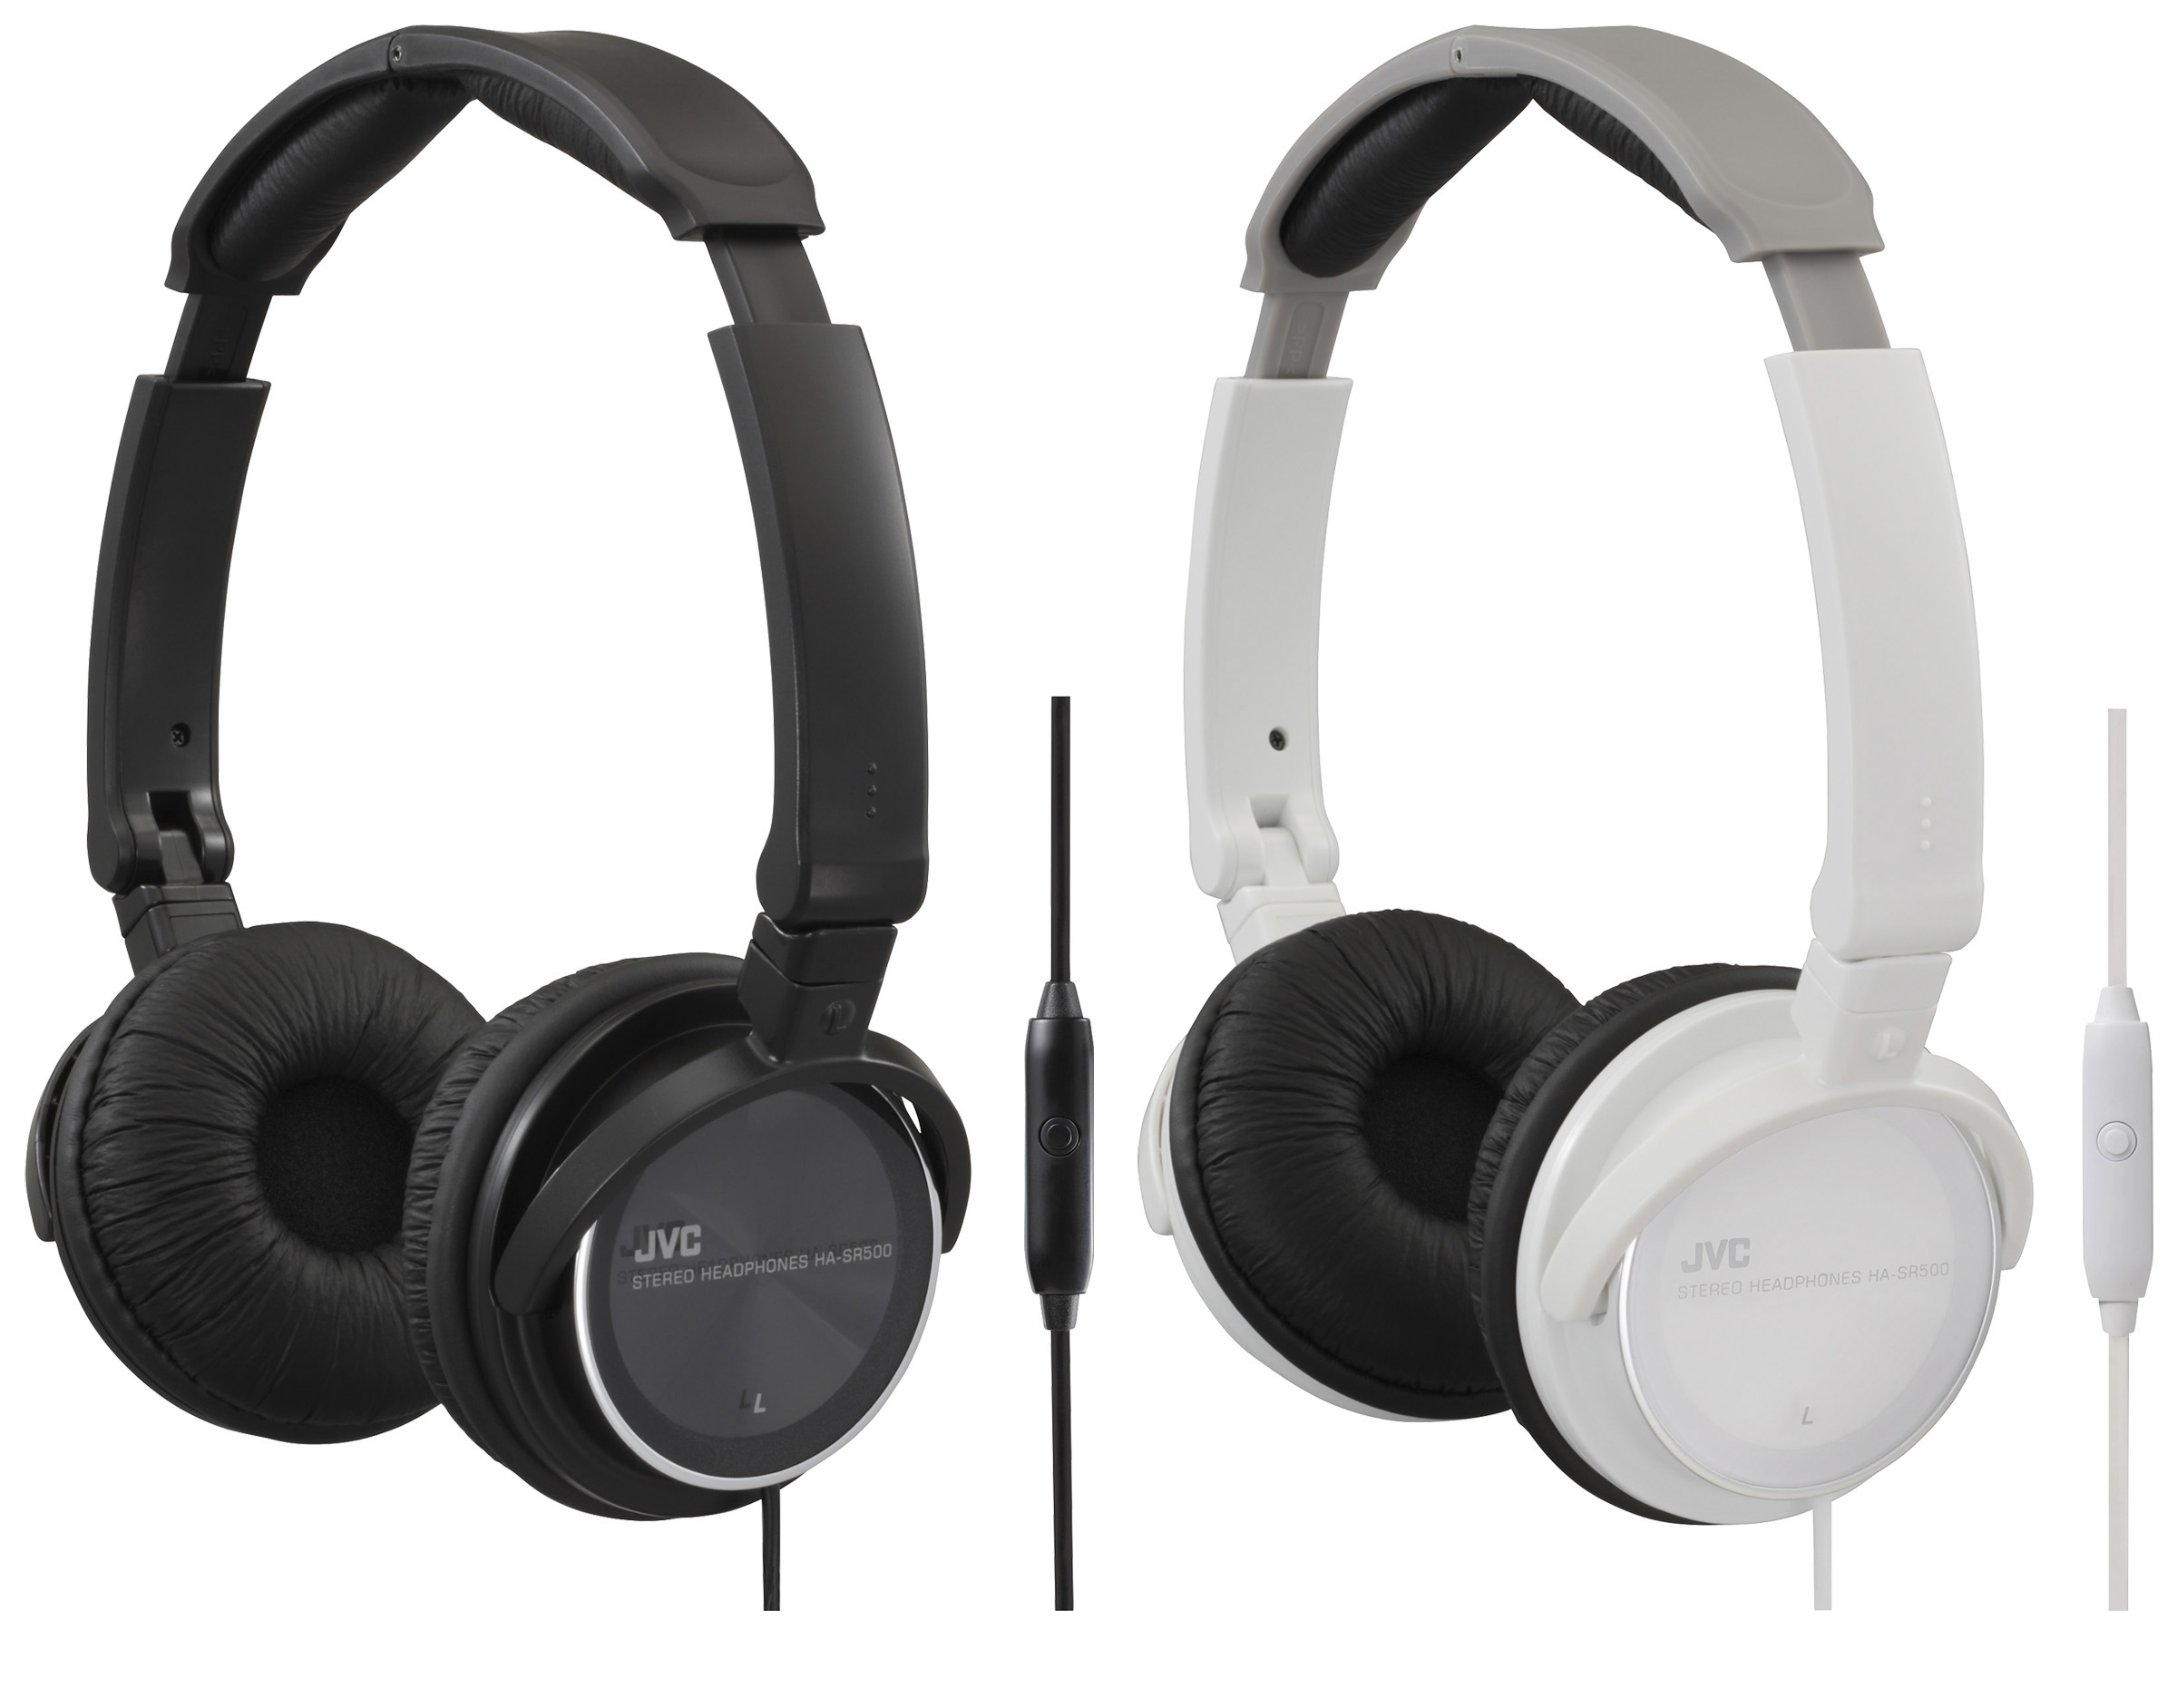 JVC HA-SR500 Foldable Headphones.